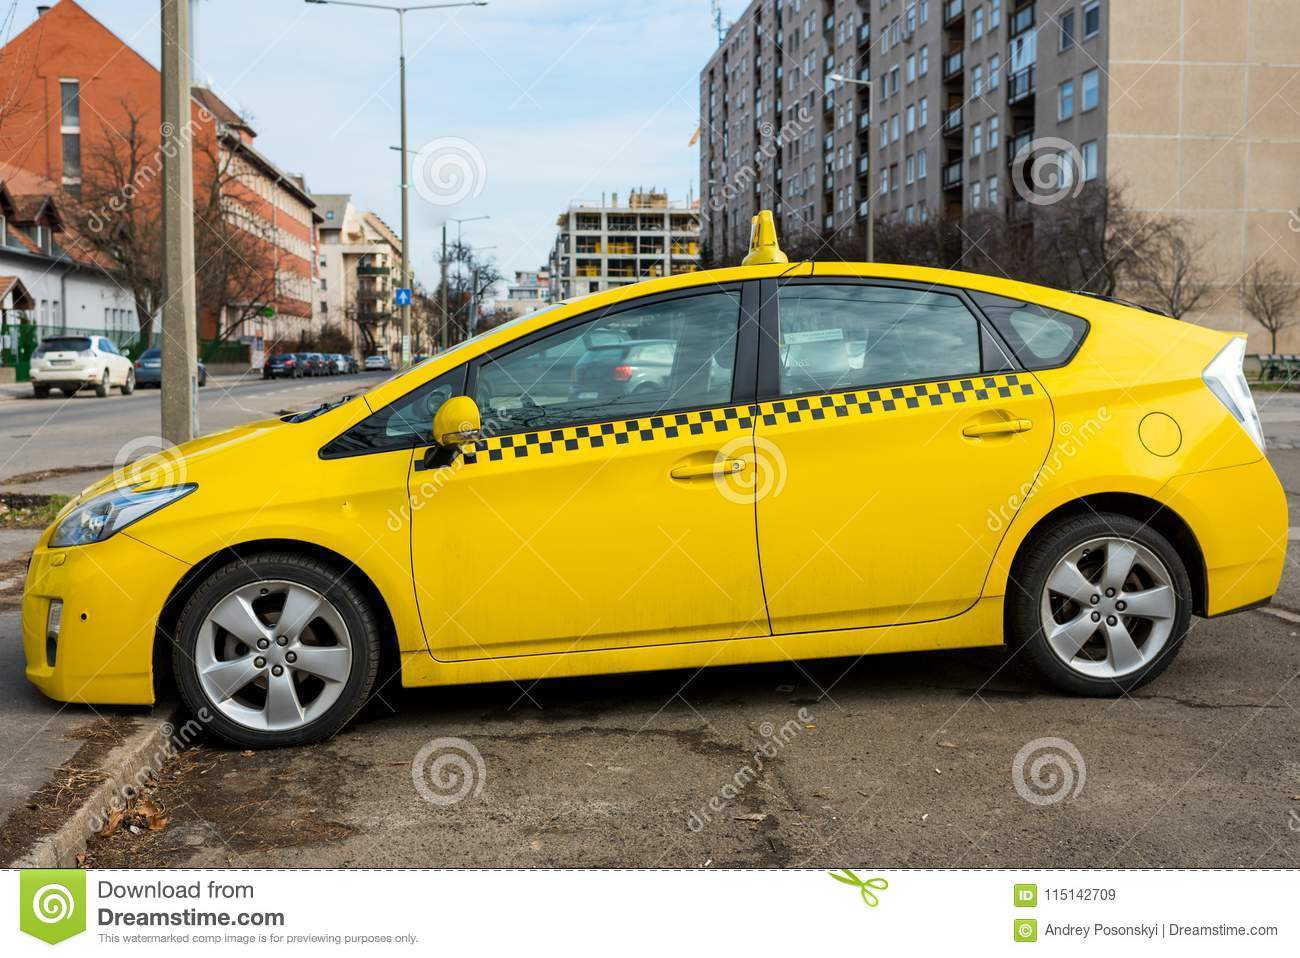 Modern Taxi Cab In Yellow Color Stock Image - Image of signs